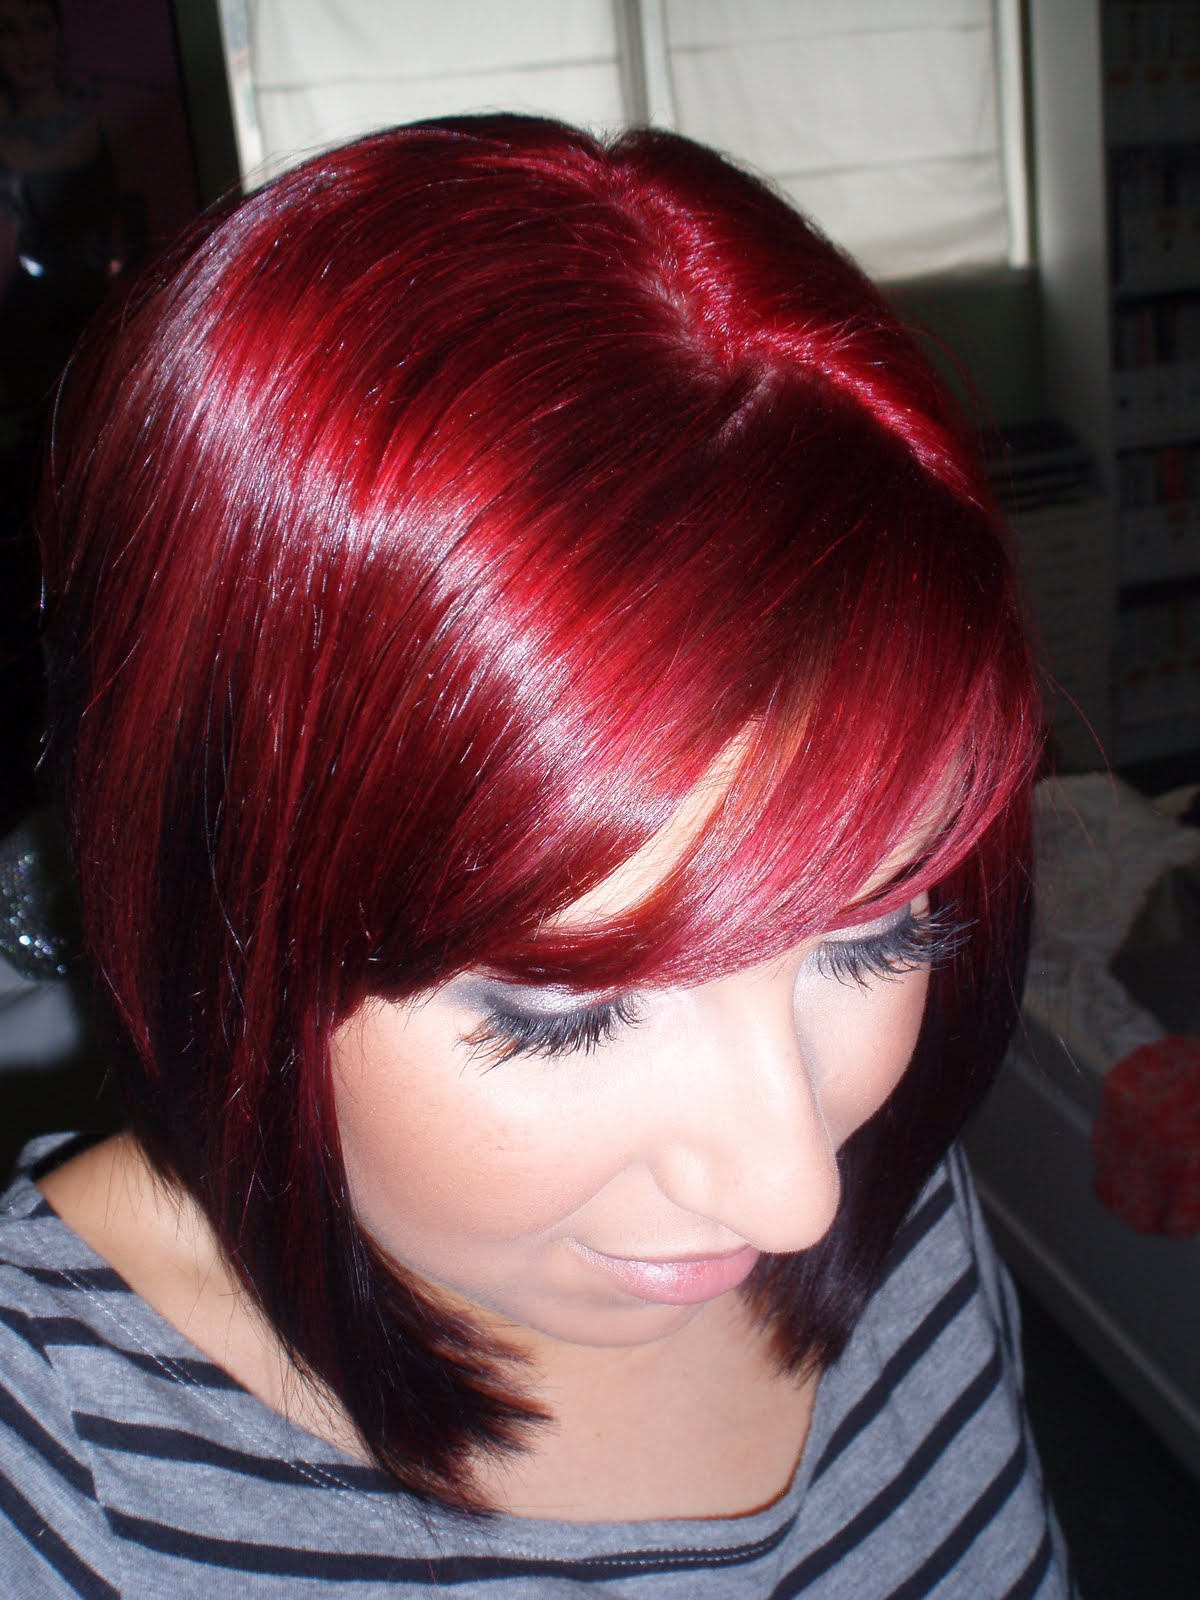 Trends for hair colouring at home